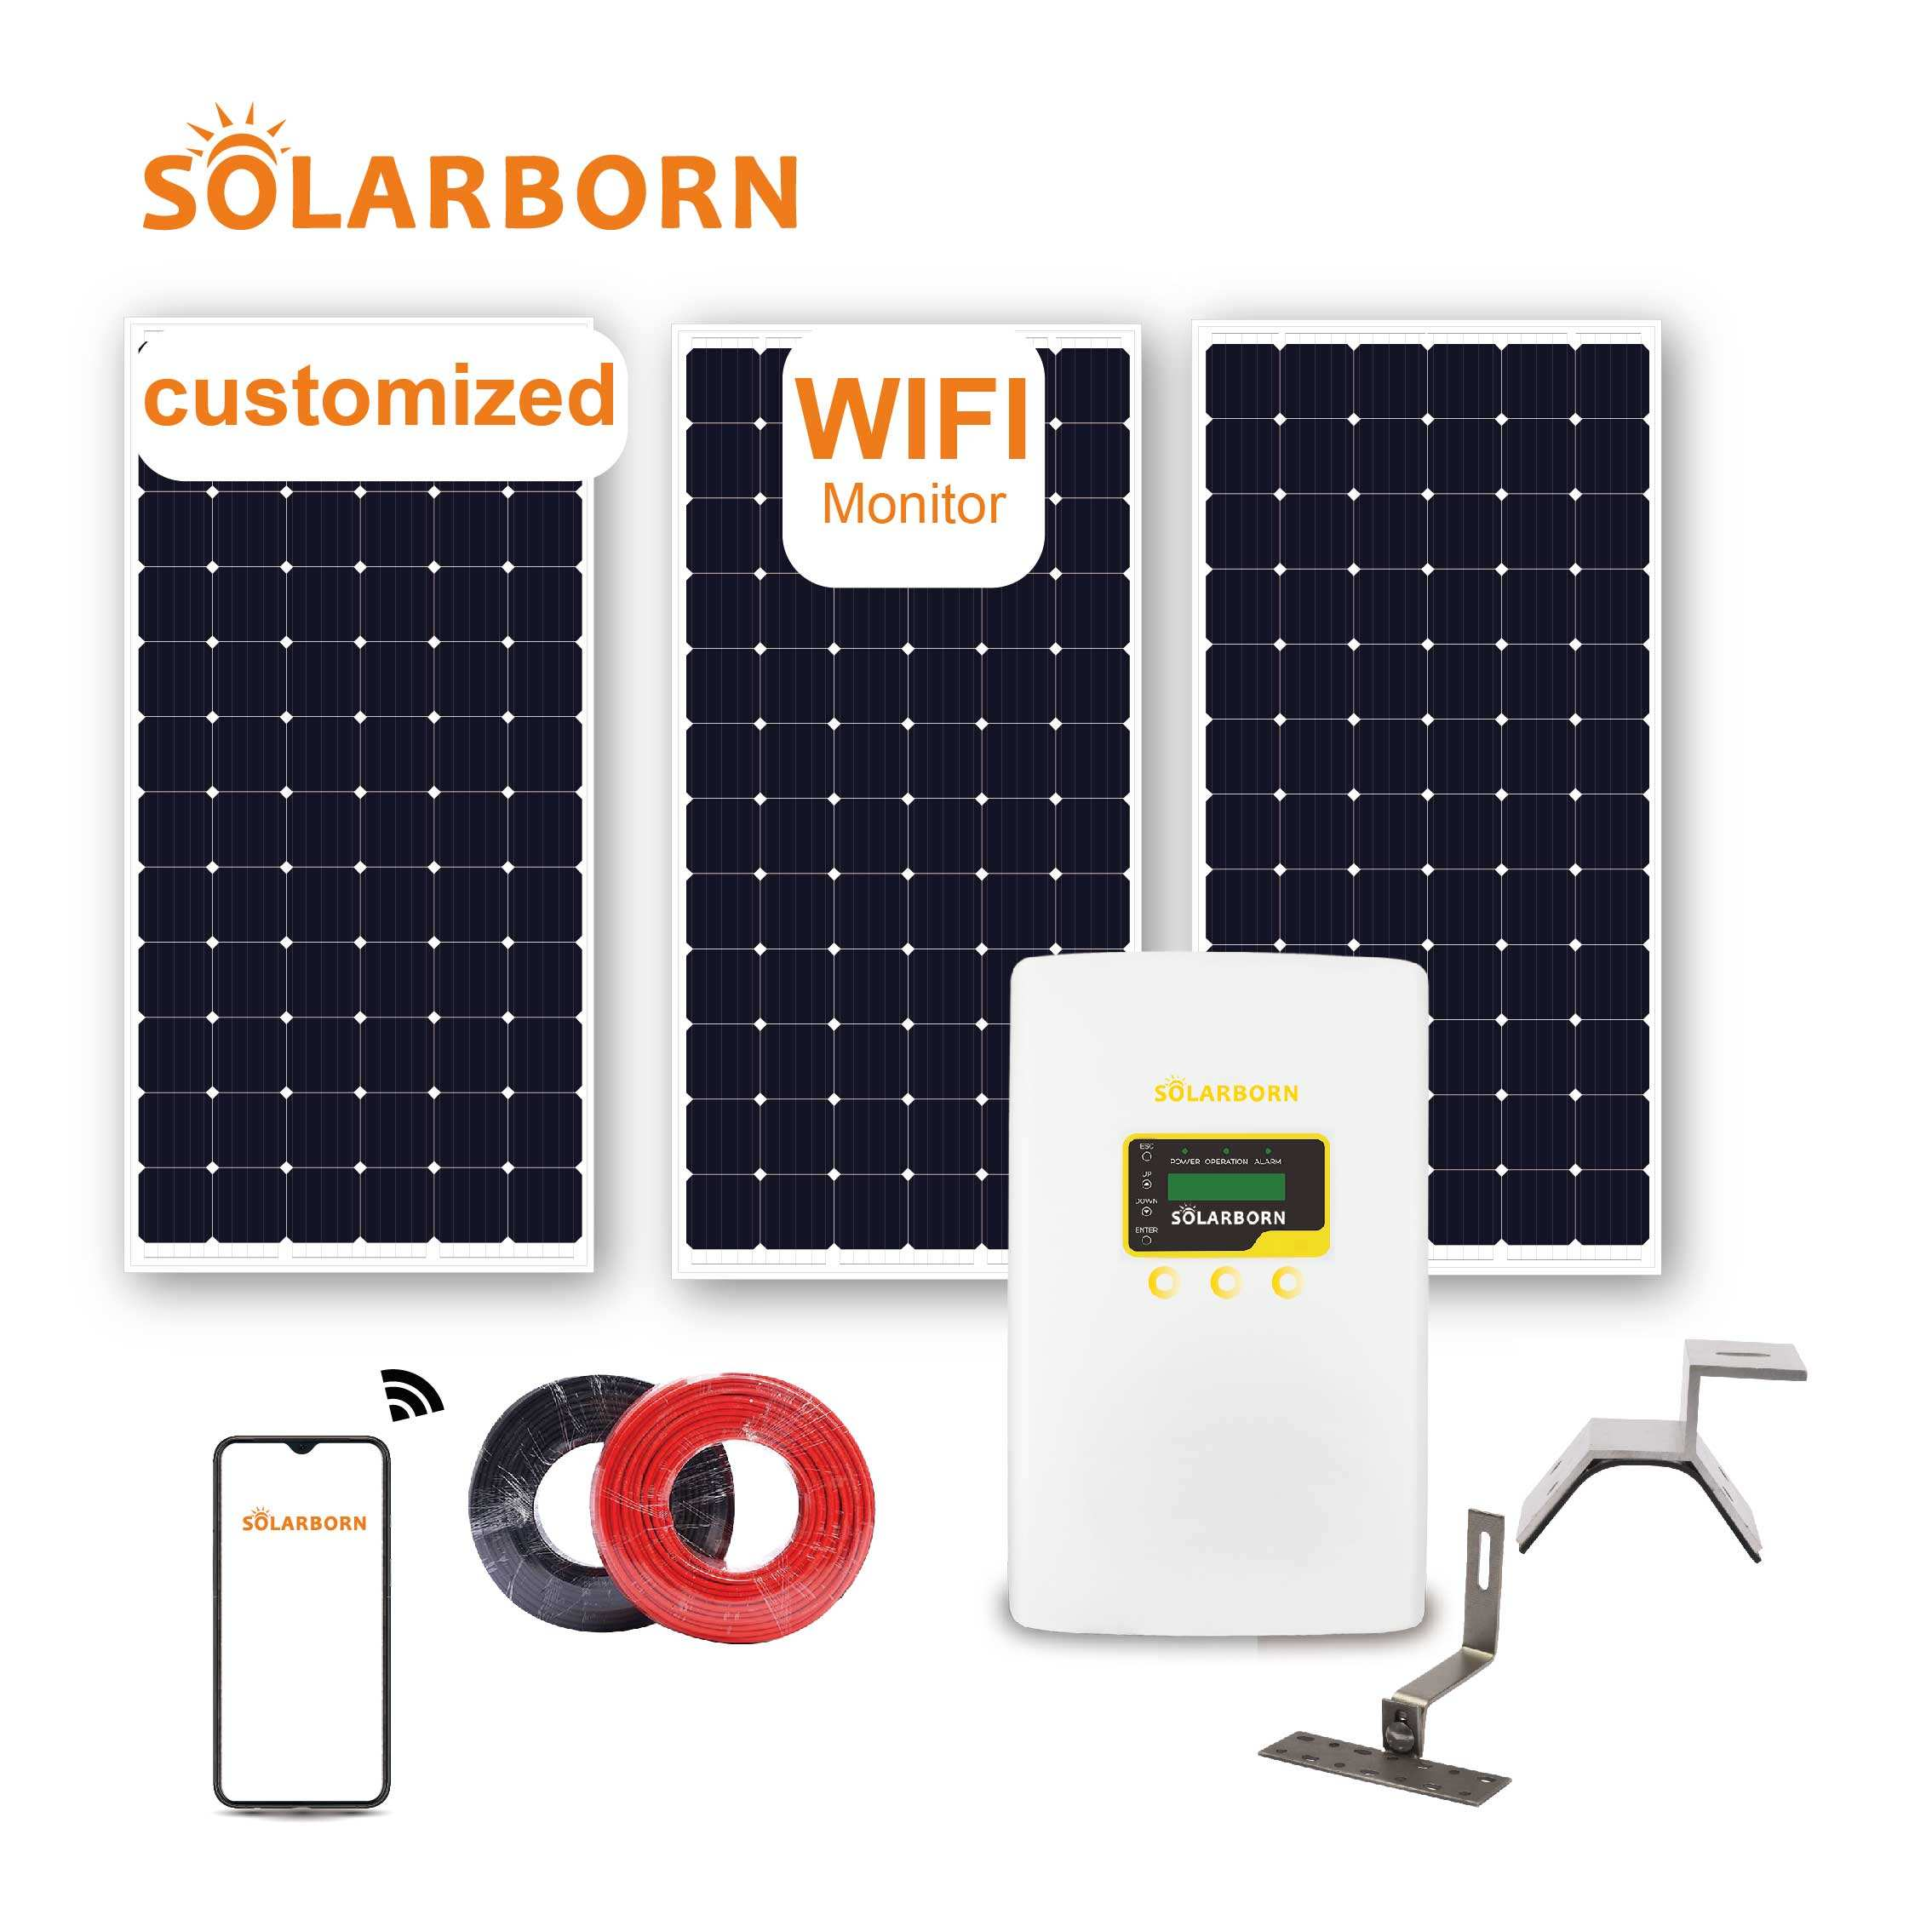 Solarborn complete hybrid 10kw 15kw 20kw 30kw 50kw 1mw panel inverter on off grid price power home solar energy system for home